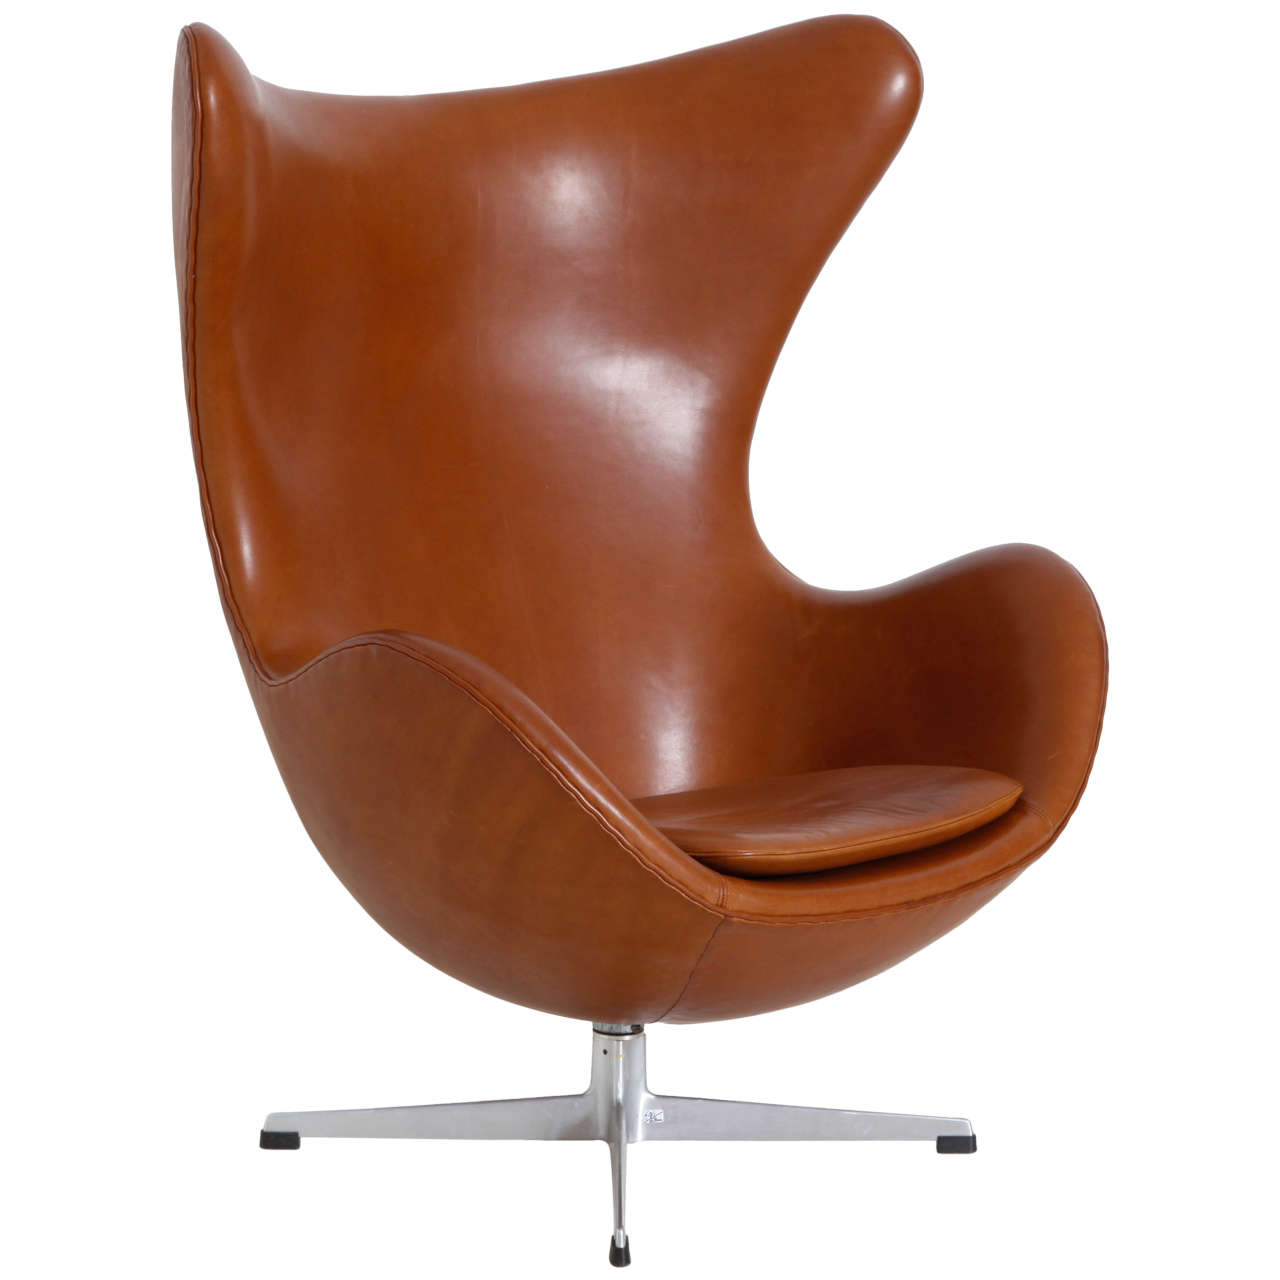 Egg chair arne jacobsen at 1stdibs for Egg chair jacobsen